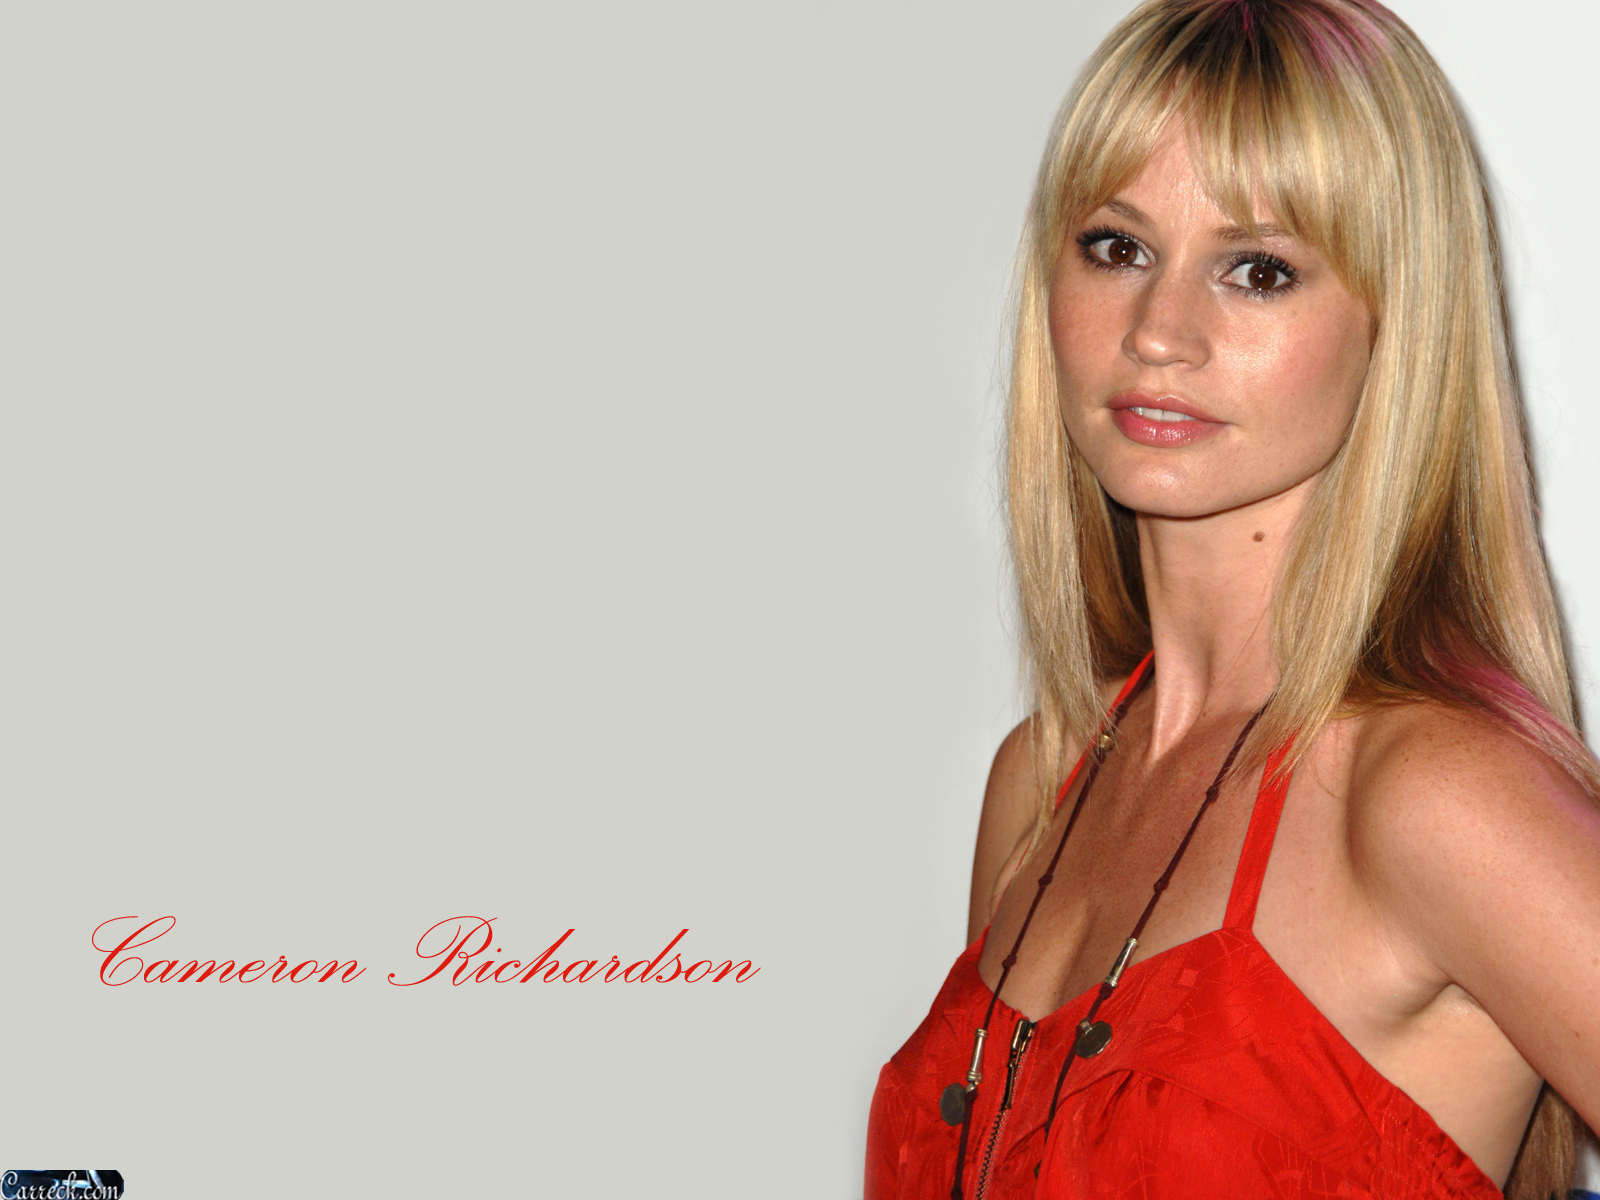 Cameron Richardson on facebook